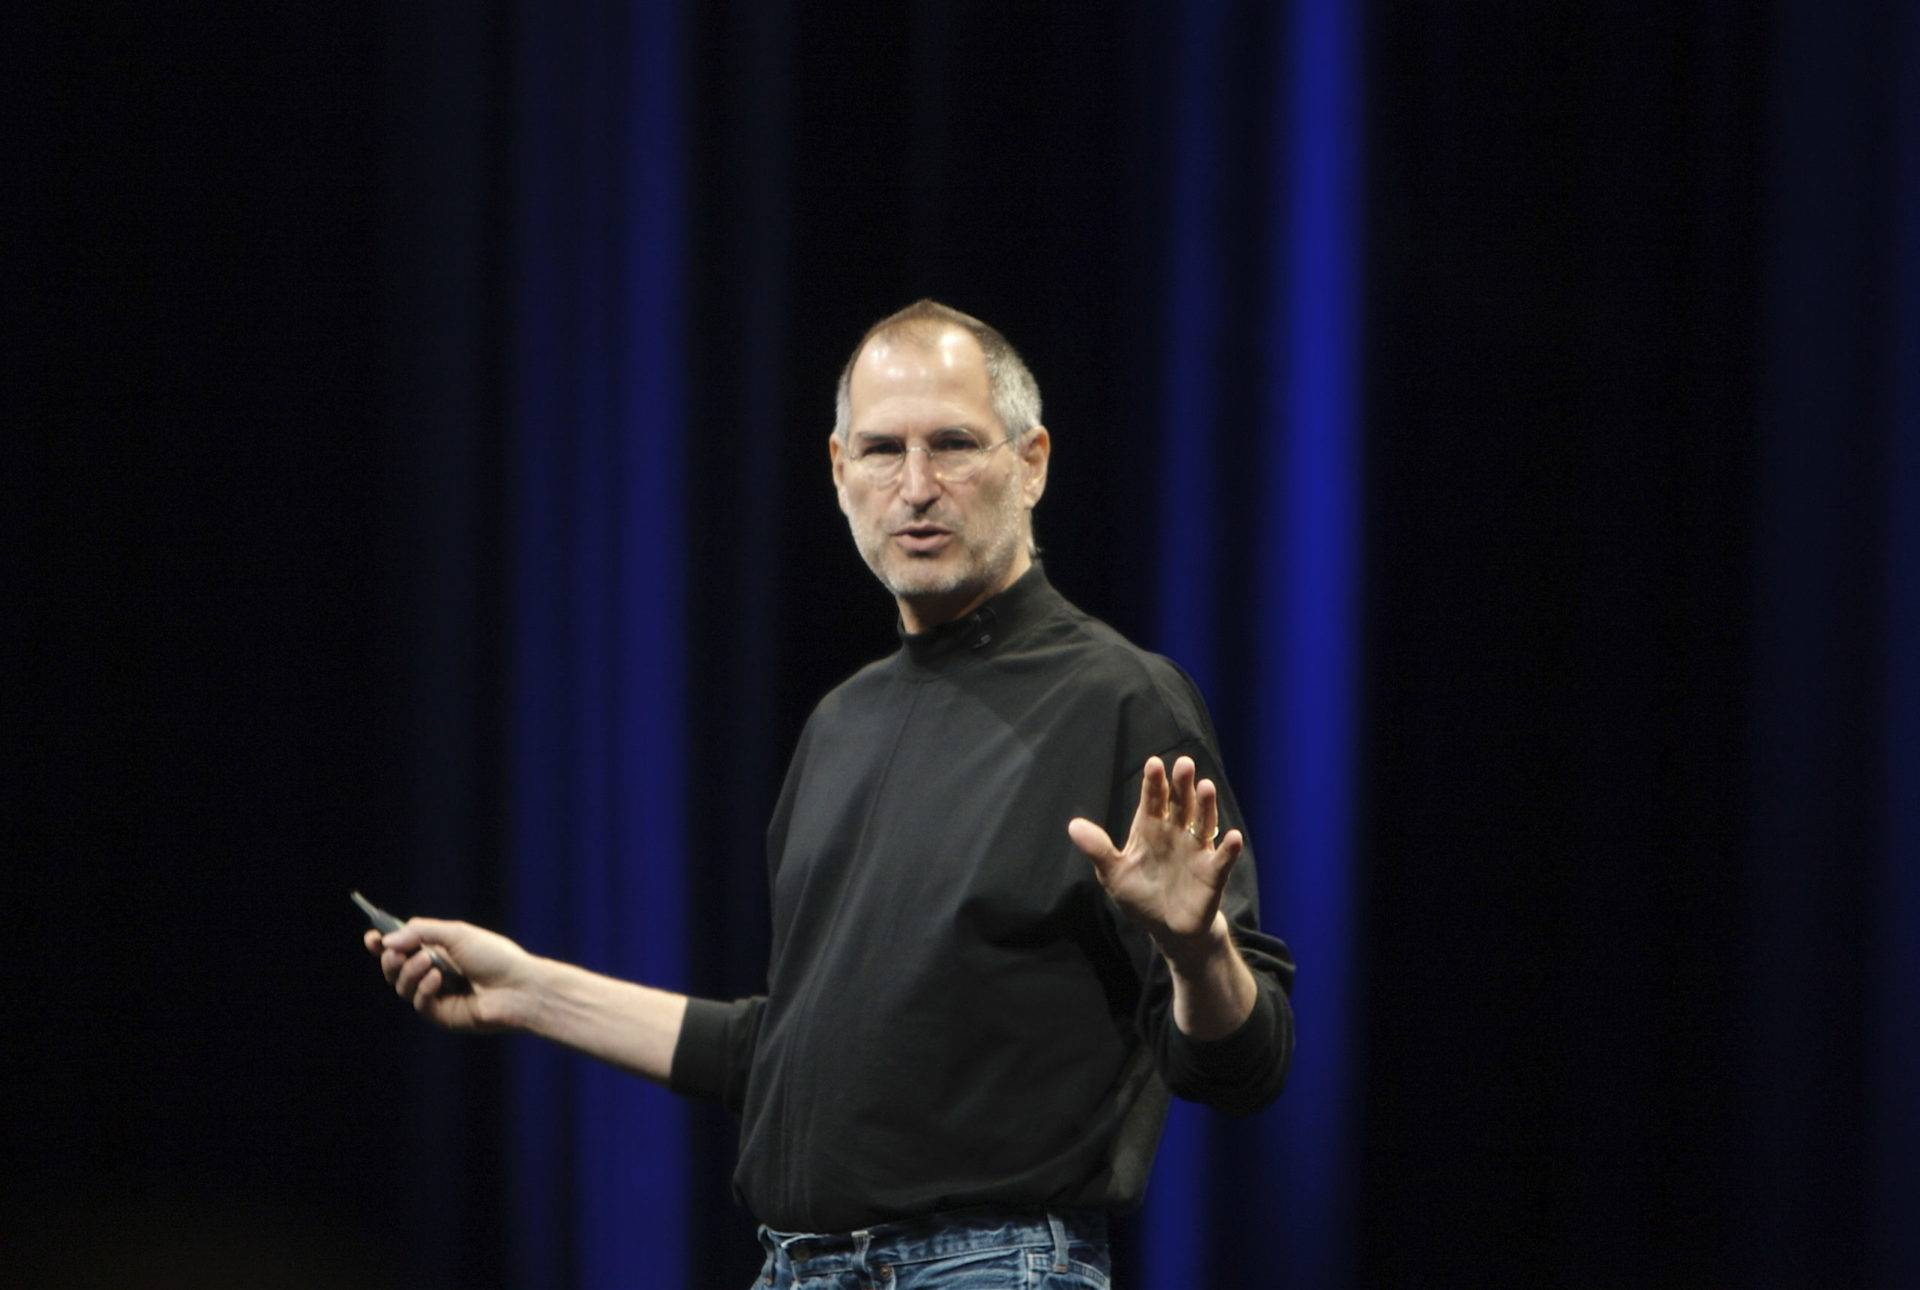 Steve Jobs: Here's to the crazy ones